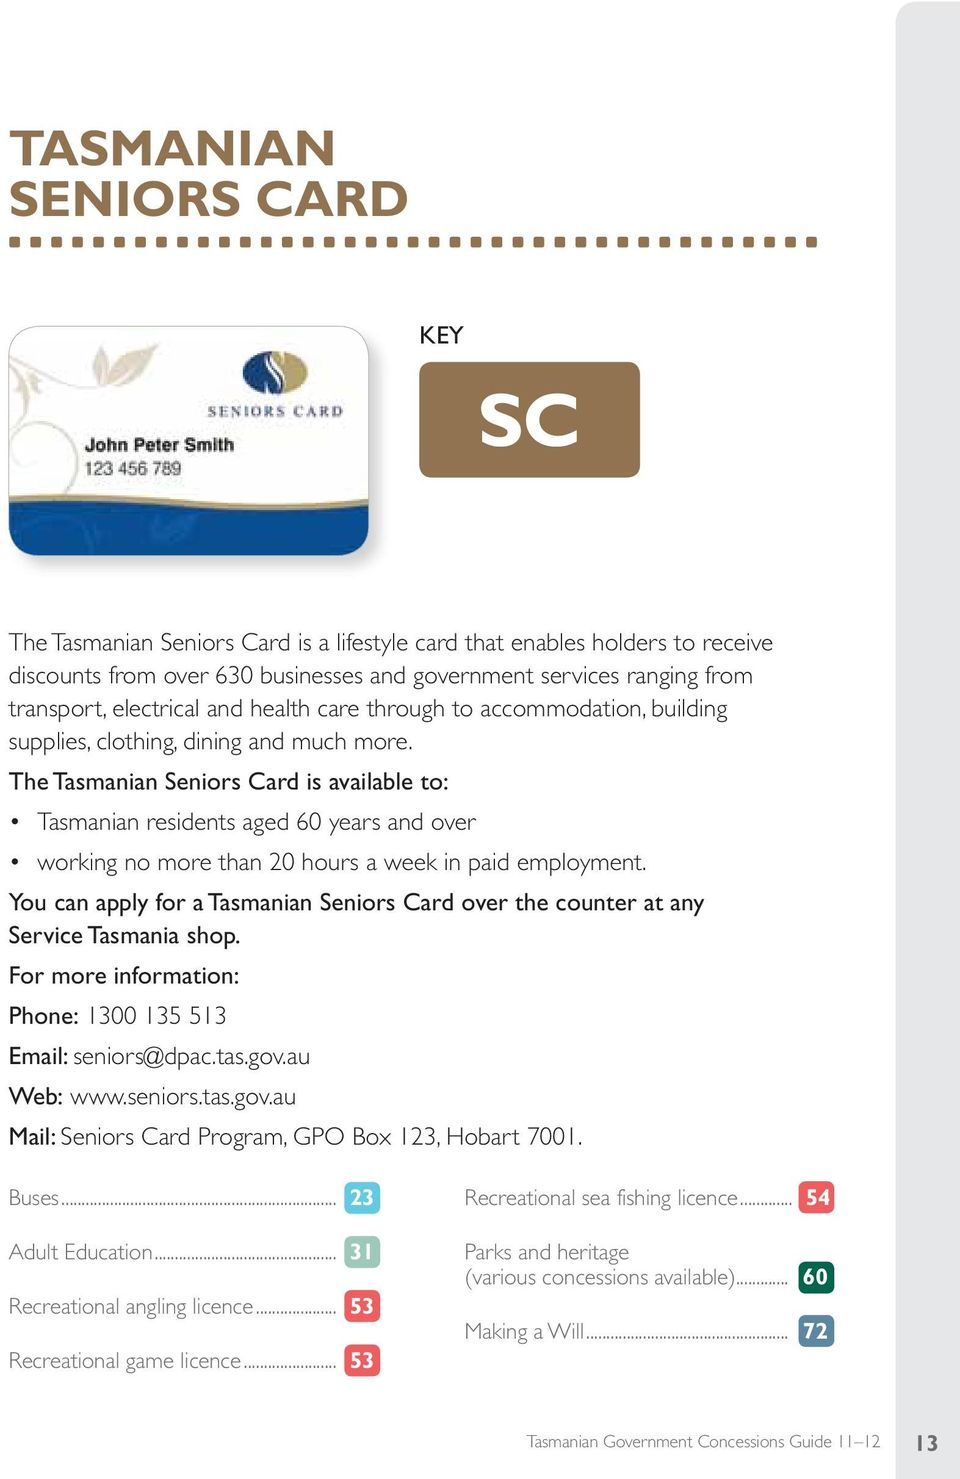 The Tasmanian Seniors Card is available to: Tasmanian residents aged 60 years and over working no more than 20 hours a week in paid employment.